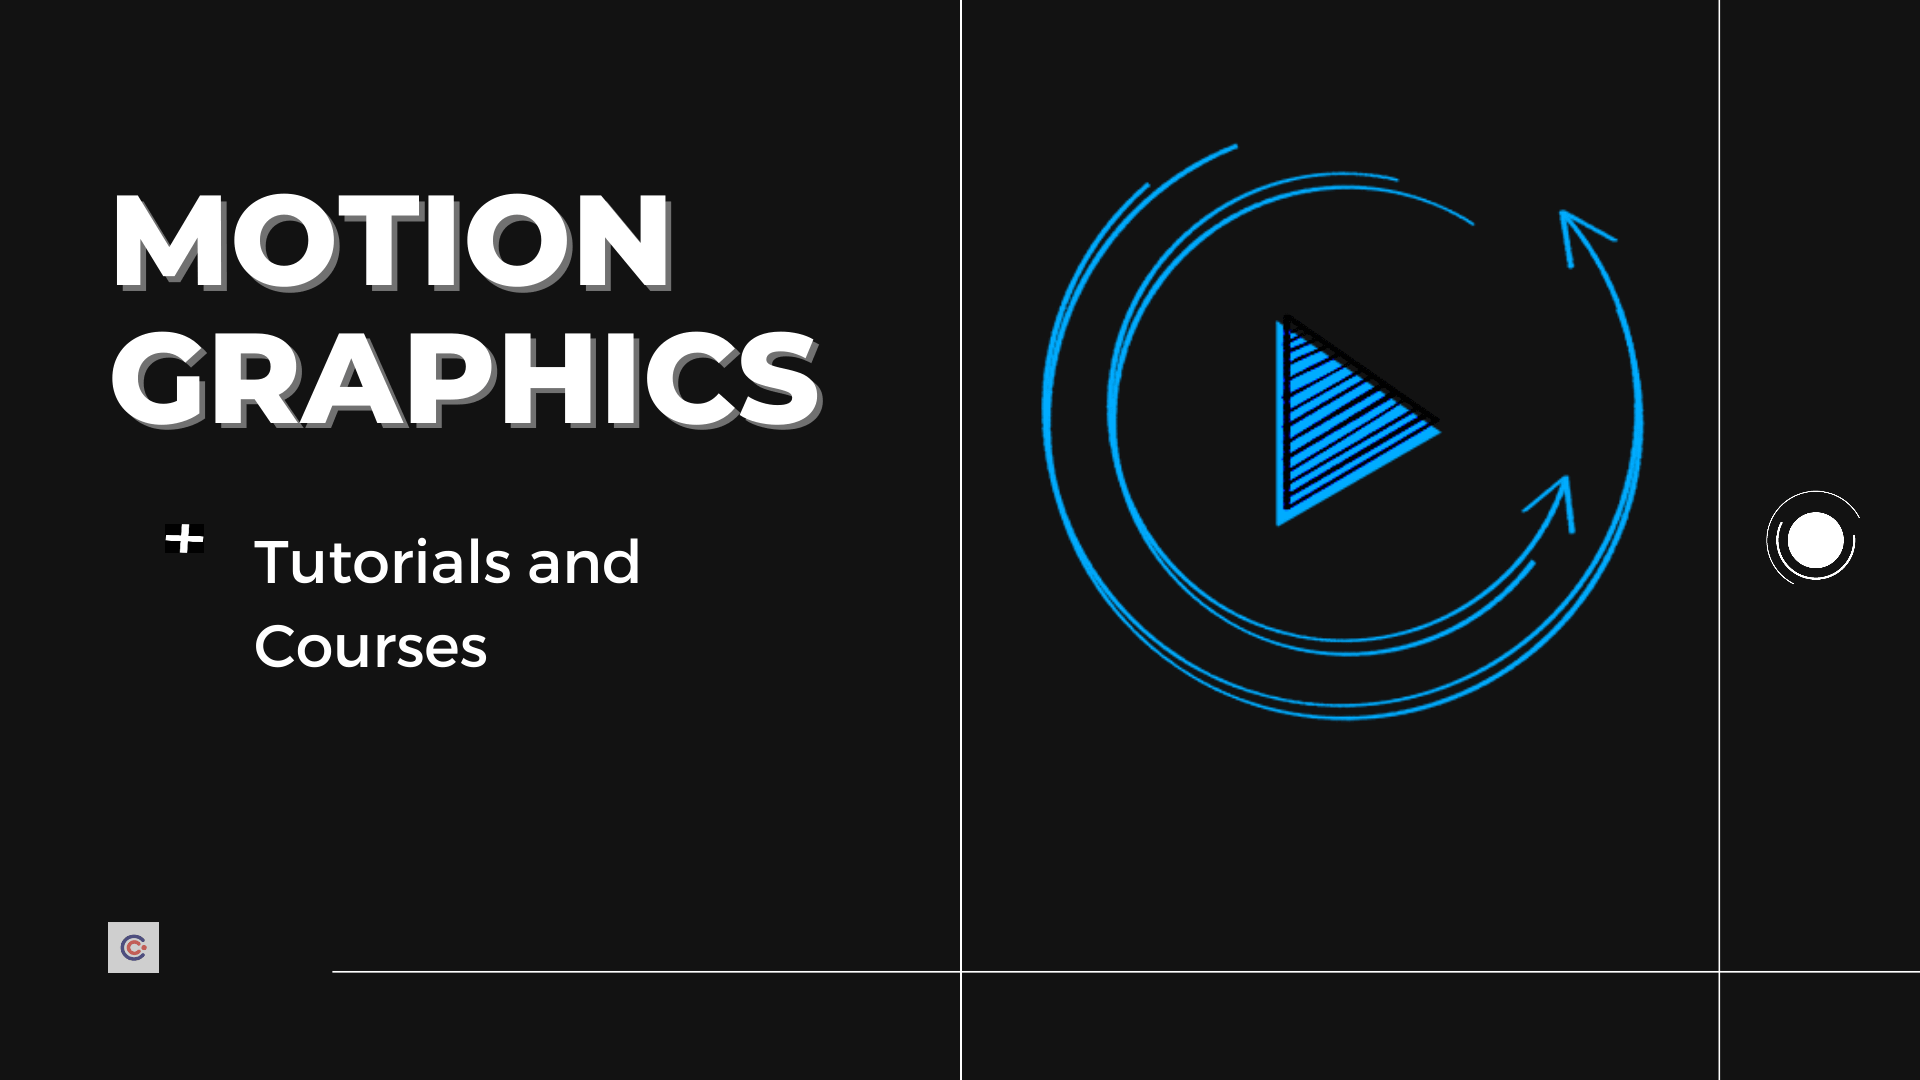 7 Best Motion Graphics Tutorials and Courses - Learn Motion Graphics Online